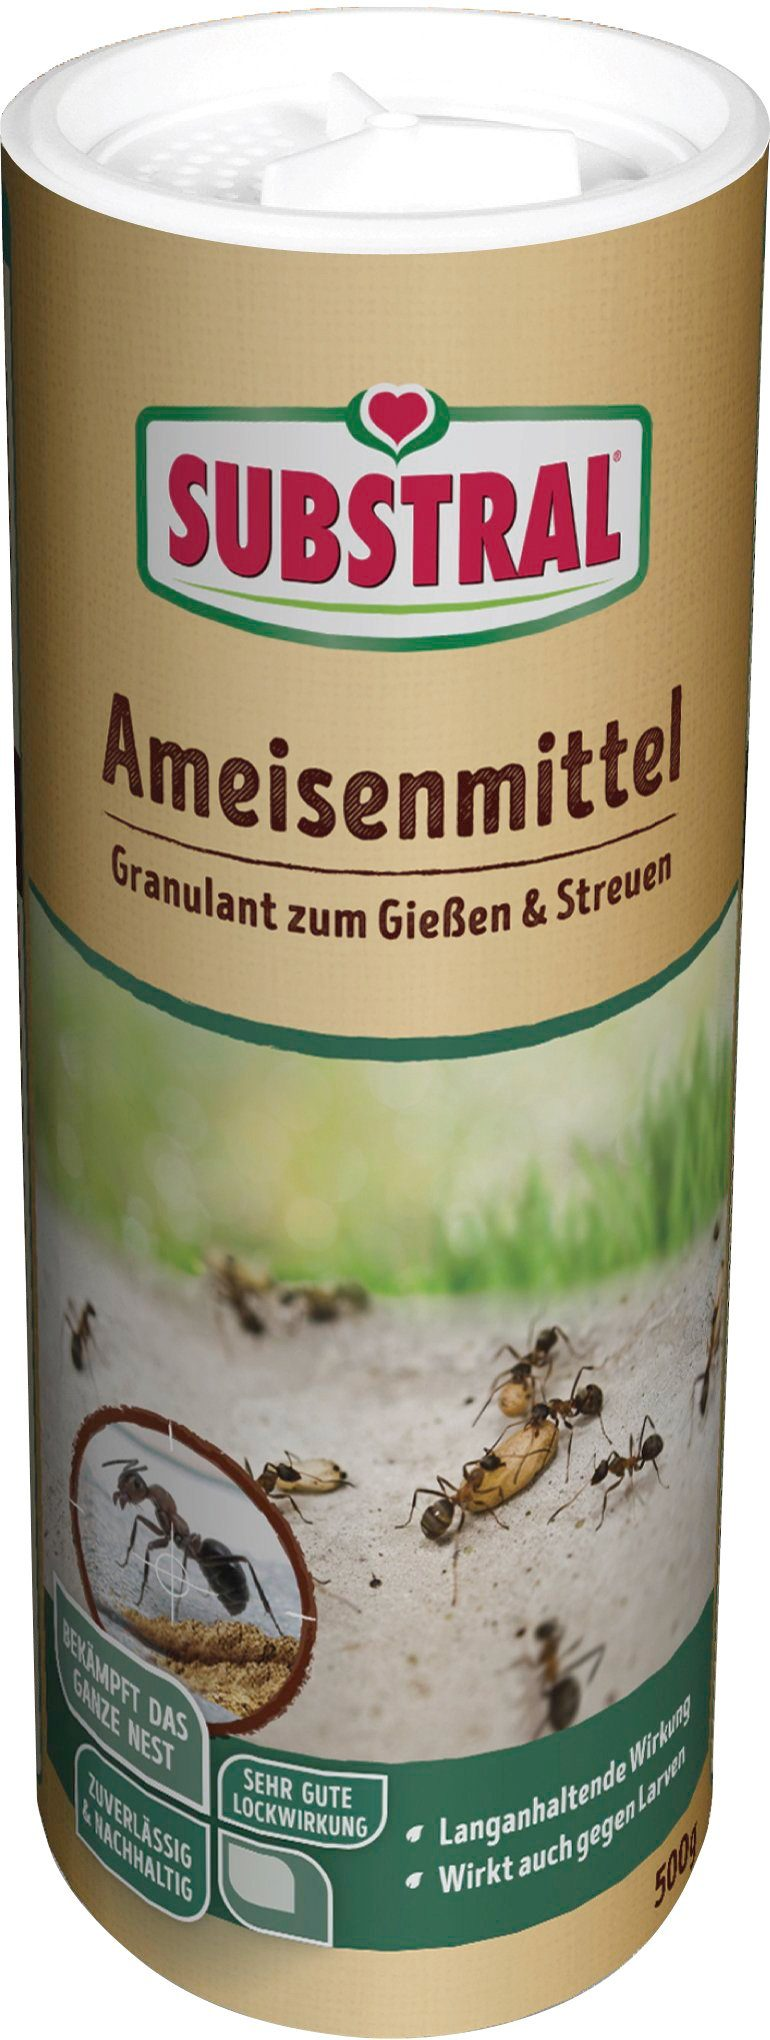 SUBSTRAL Ameisenmittel 500 g